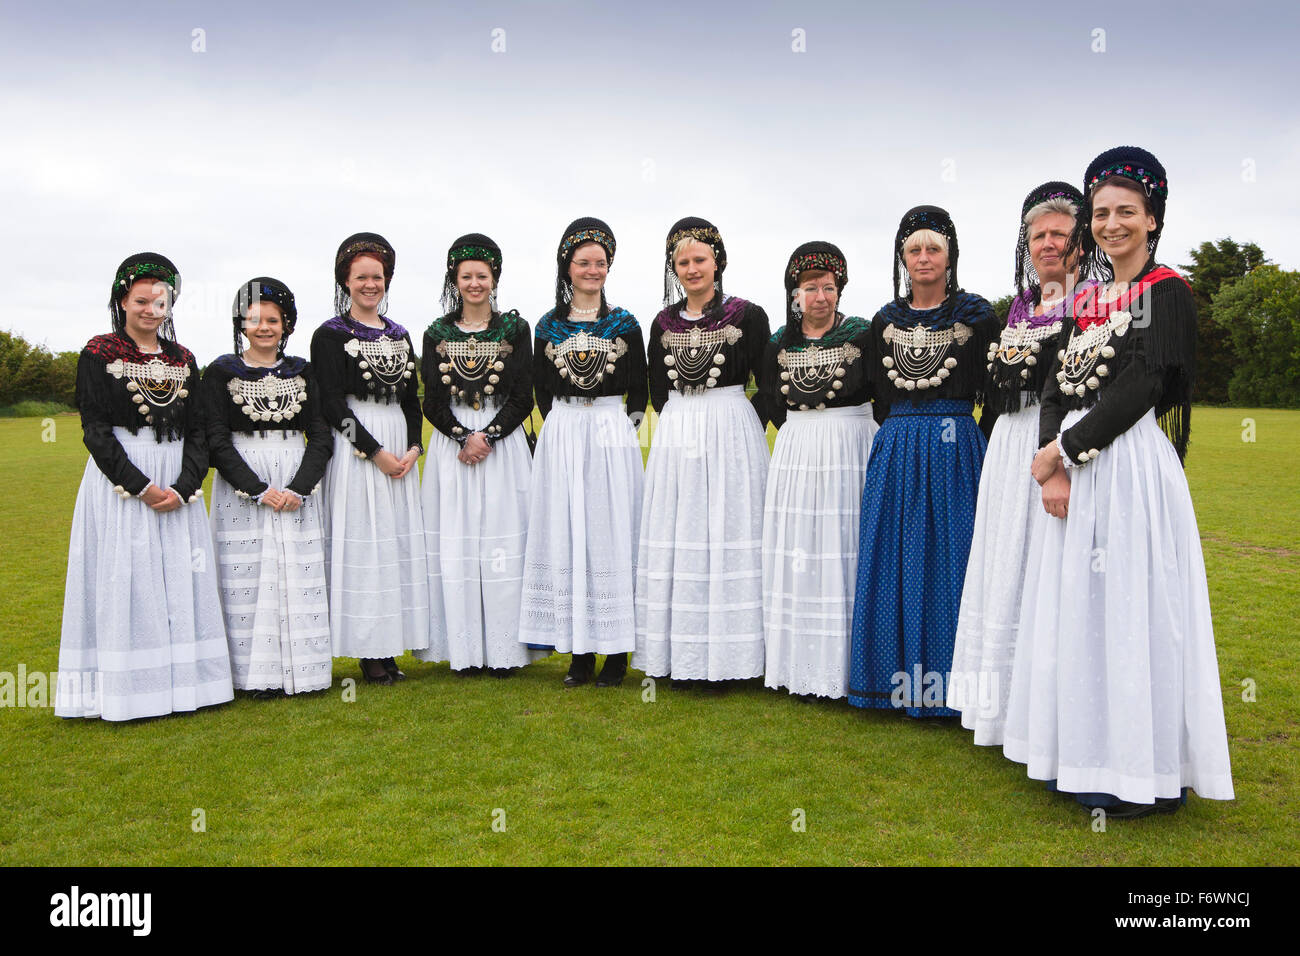 friesland women Every day royal frieslandcampina provides millions of consumers all over the world with dairy products containing valuable nutrients.